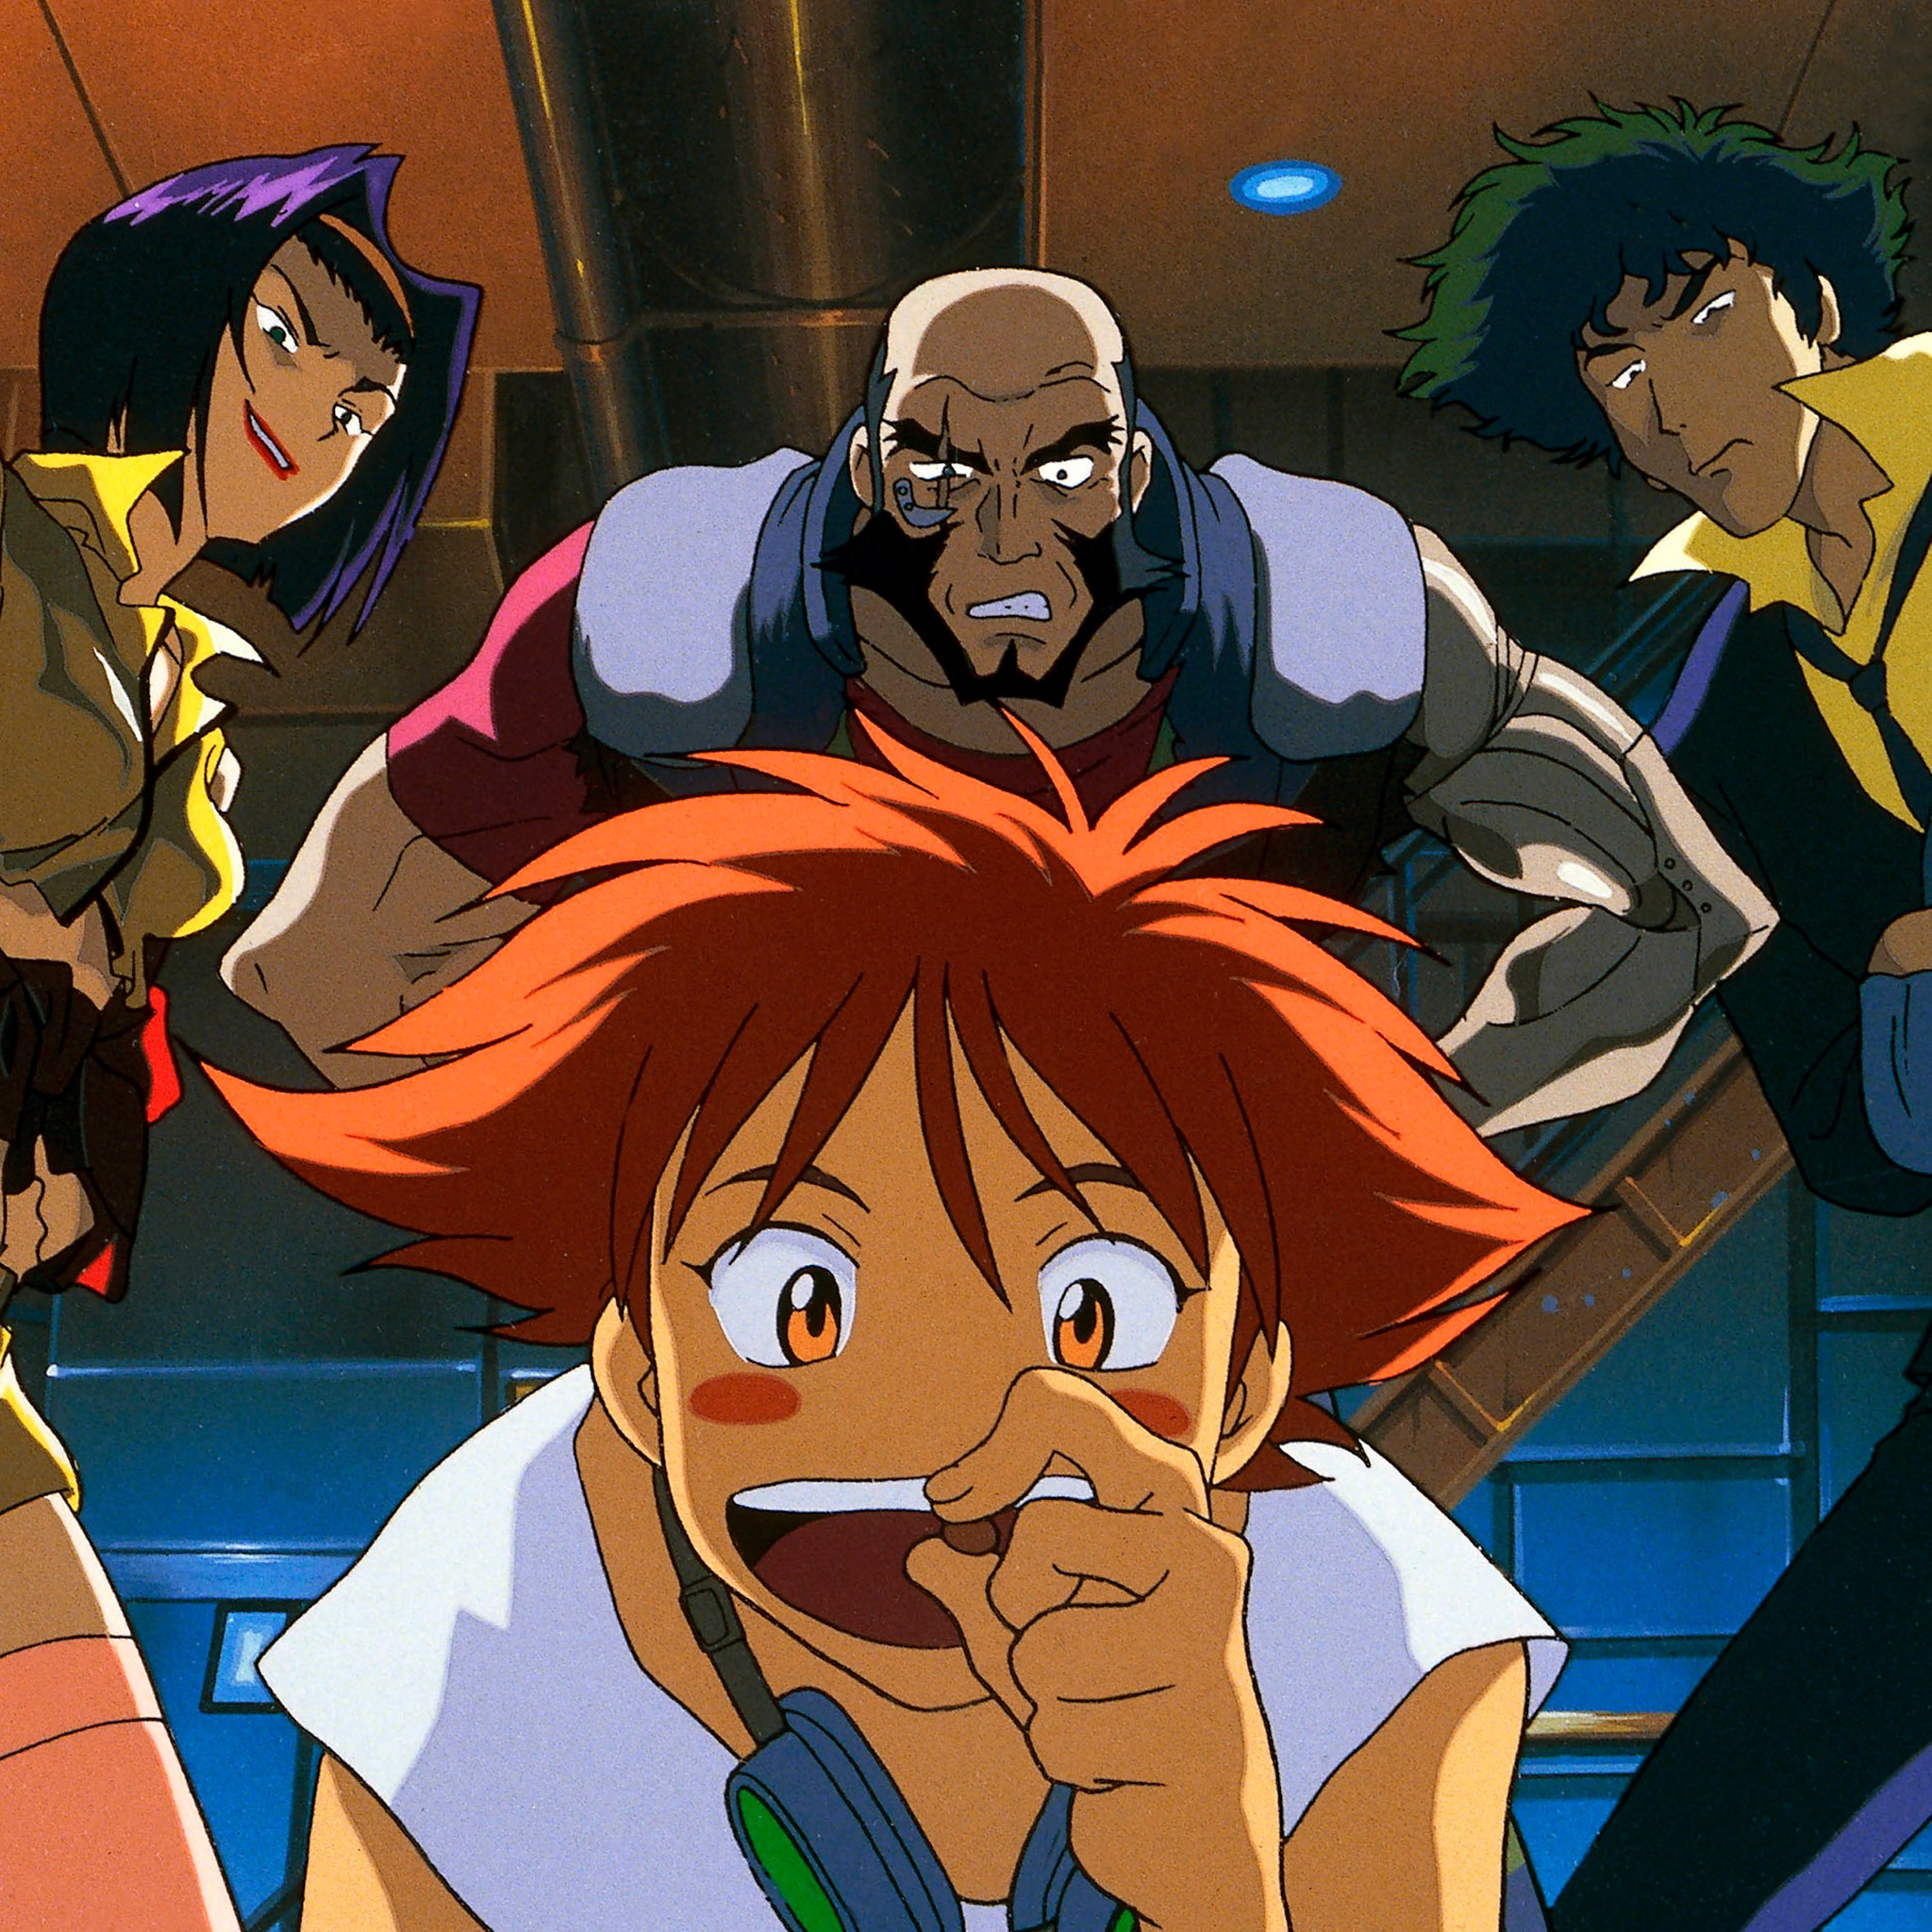 Faye Valentine, Jet Black, and Spike Spiegel glare at Ed as she prepares to eat the last morsel of food on the ship in a scene from the Cowboy Bebop TV anime.